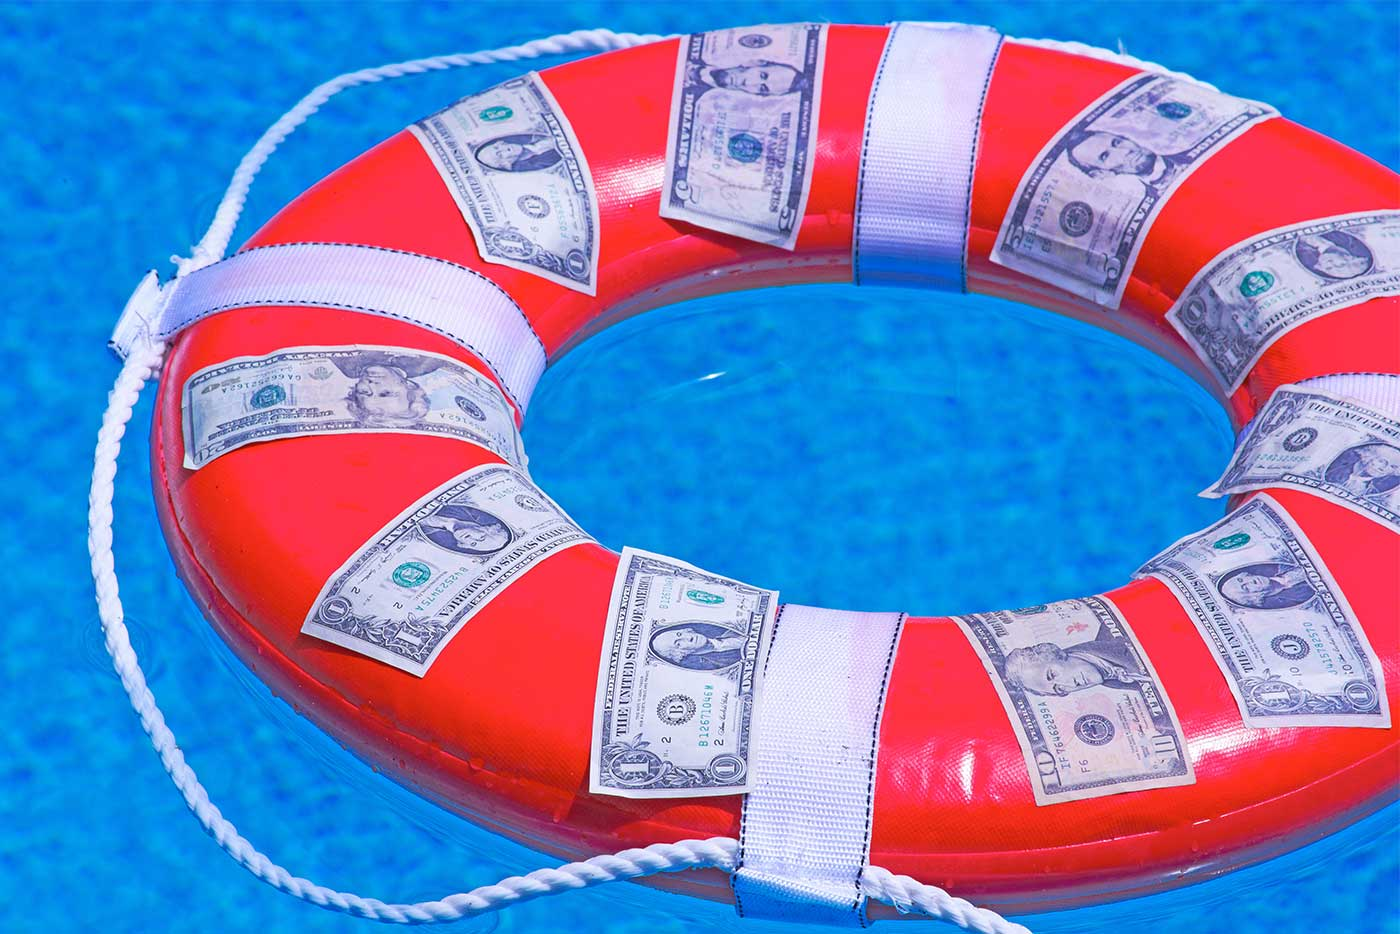 Buoy with American money on it symbolizes emergency fund for financial security